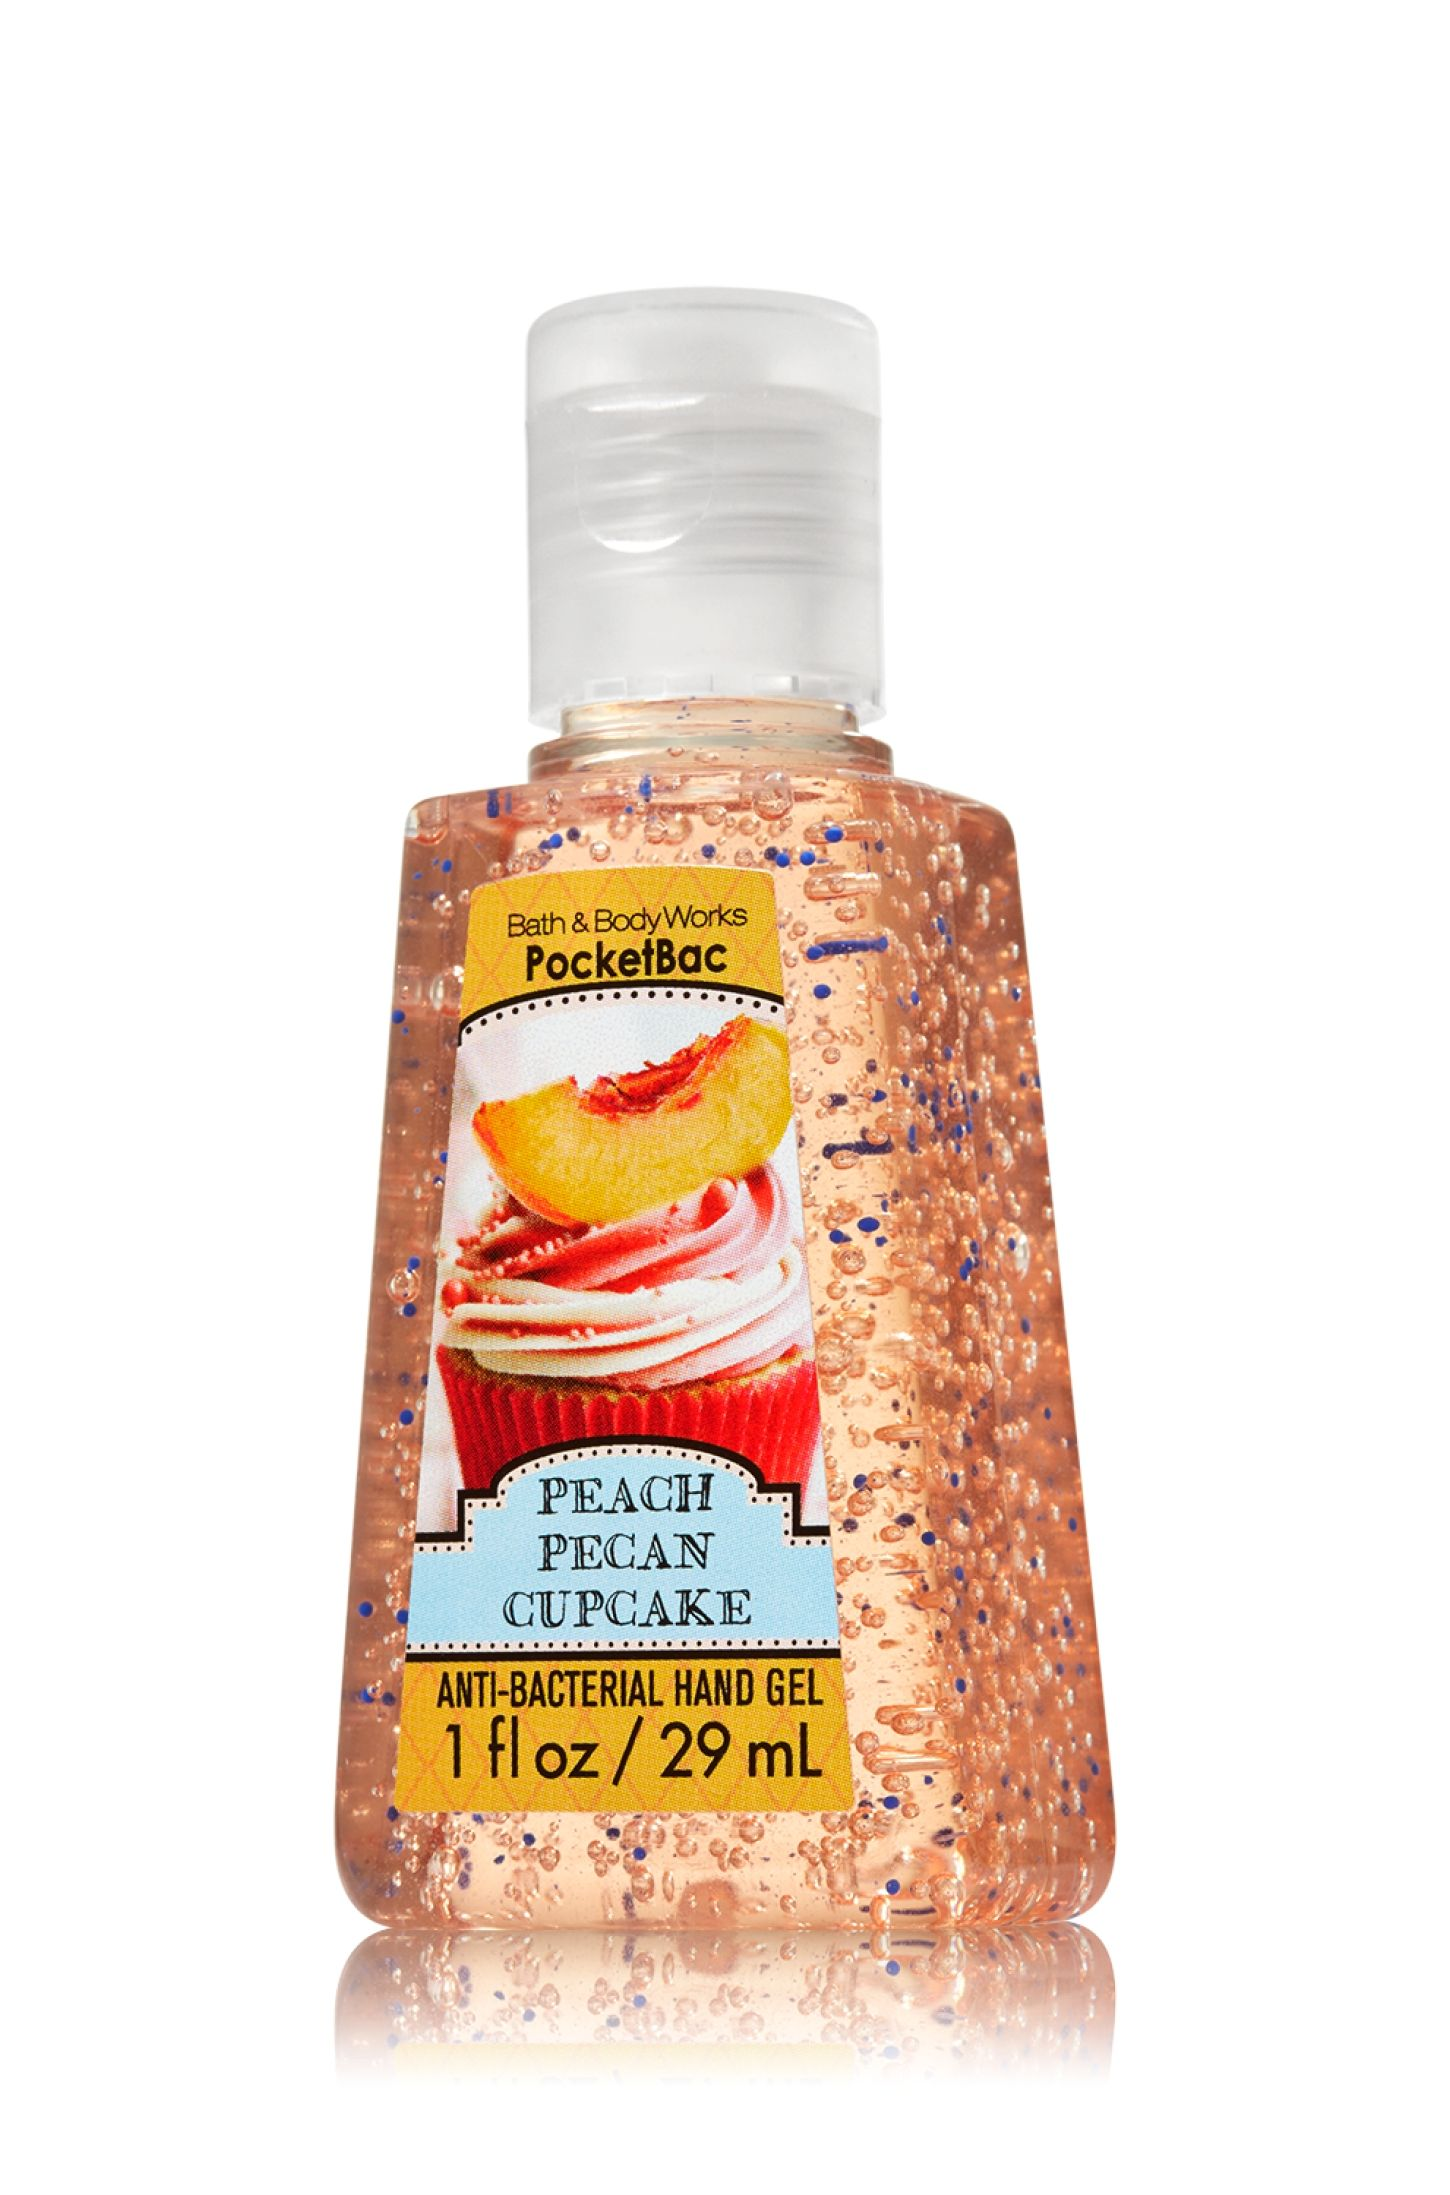 Peach Pecan Cupcake Pocketbac Sanitizing Hand Gel Soap Sanitizer